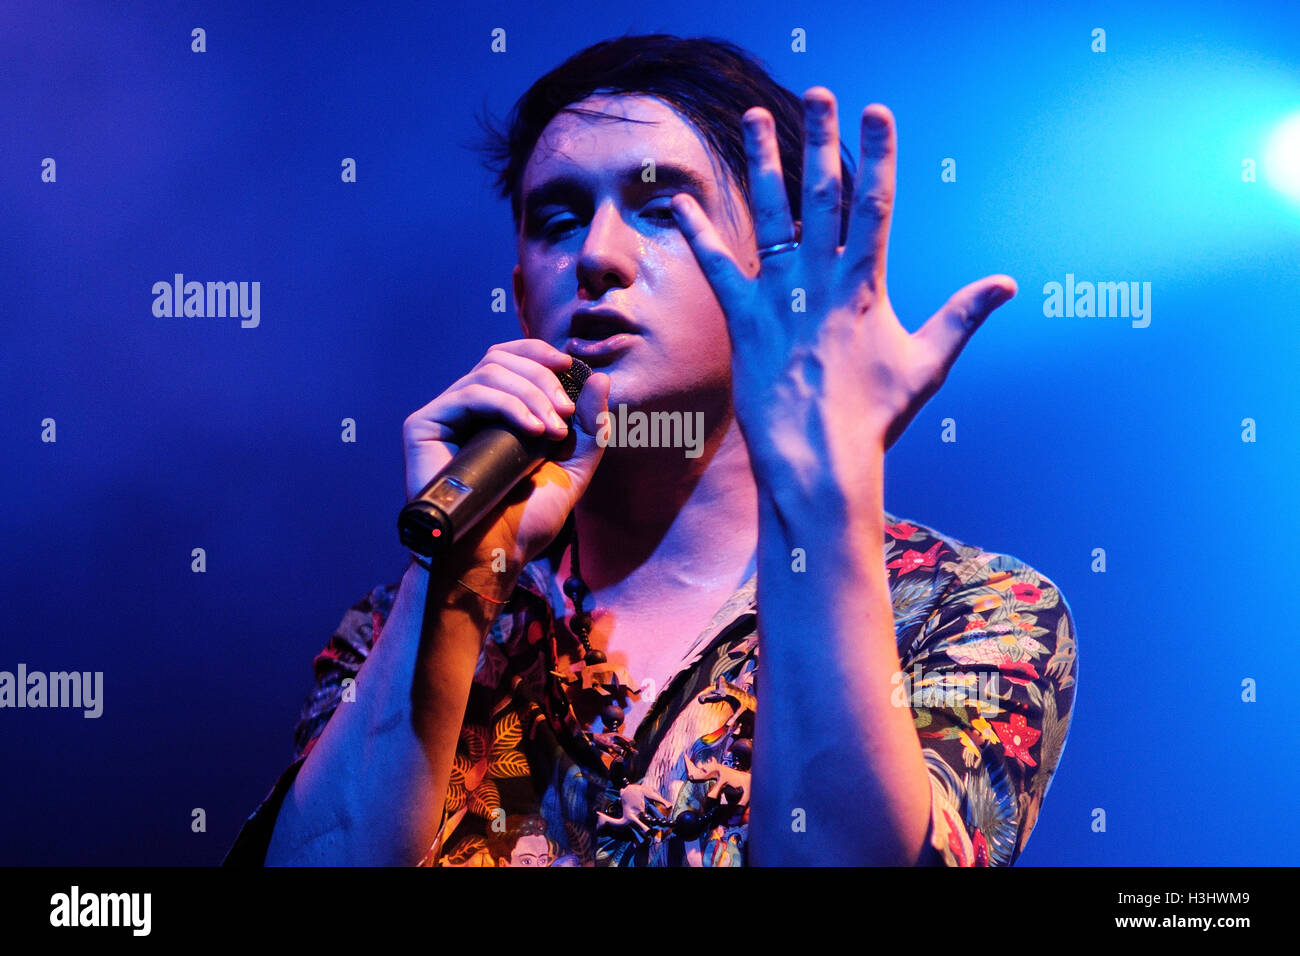 BARCELONA - OCT 14: Patrick Wolf (singer from London) performs at Apolo on October 14, 2011 in Barcelona, Spain. - Stock Image